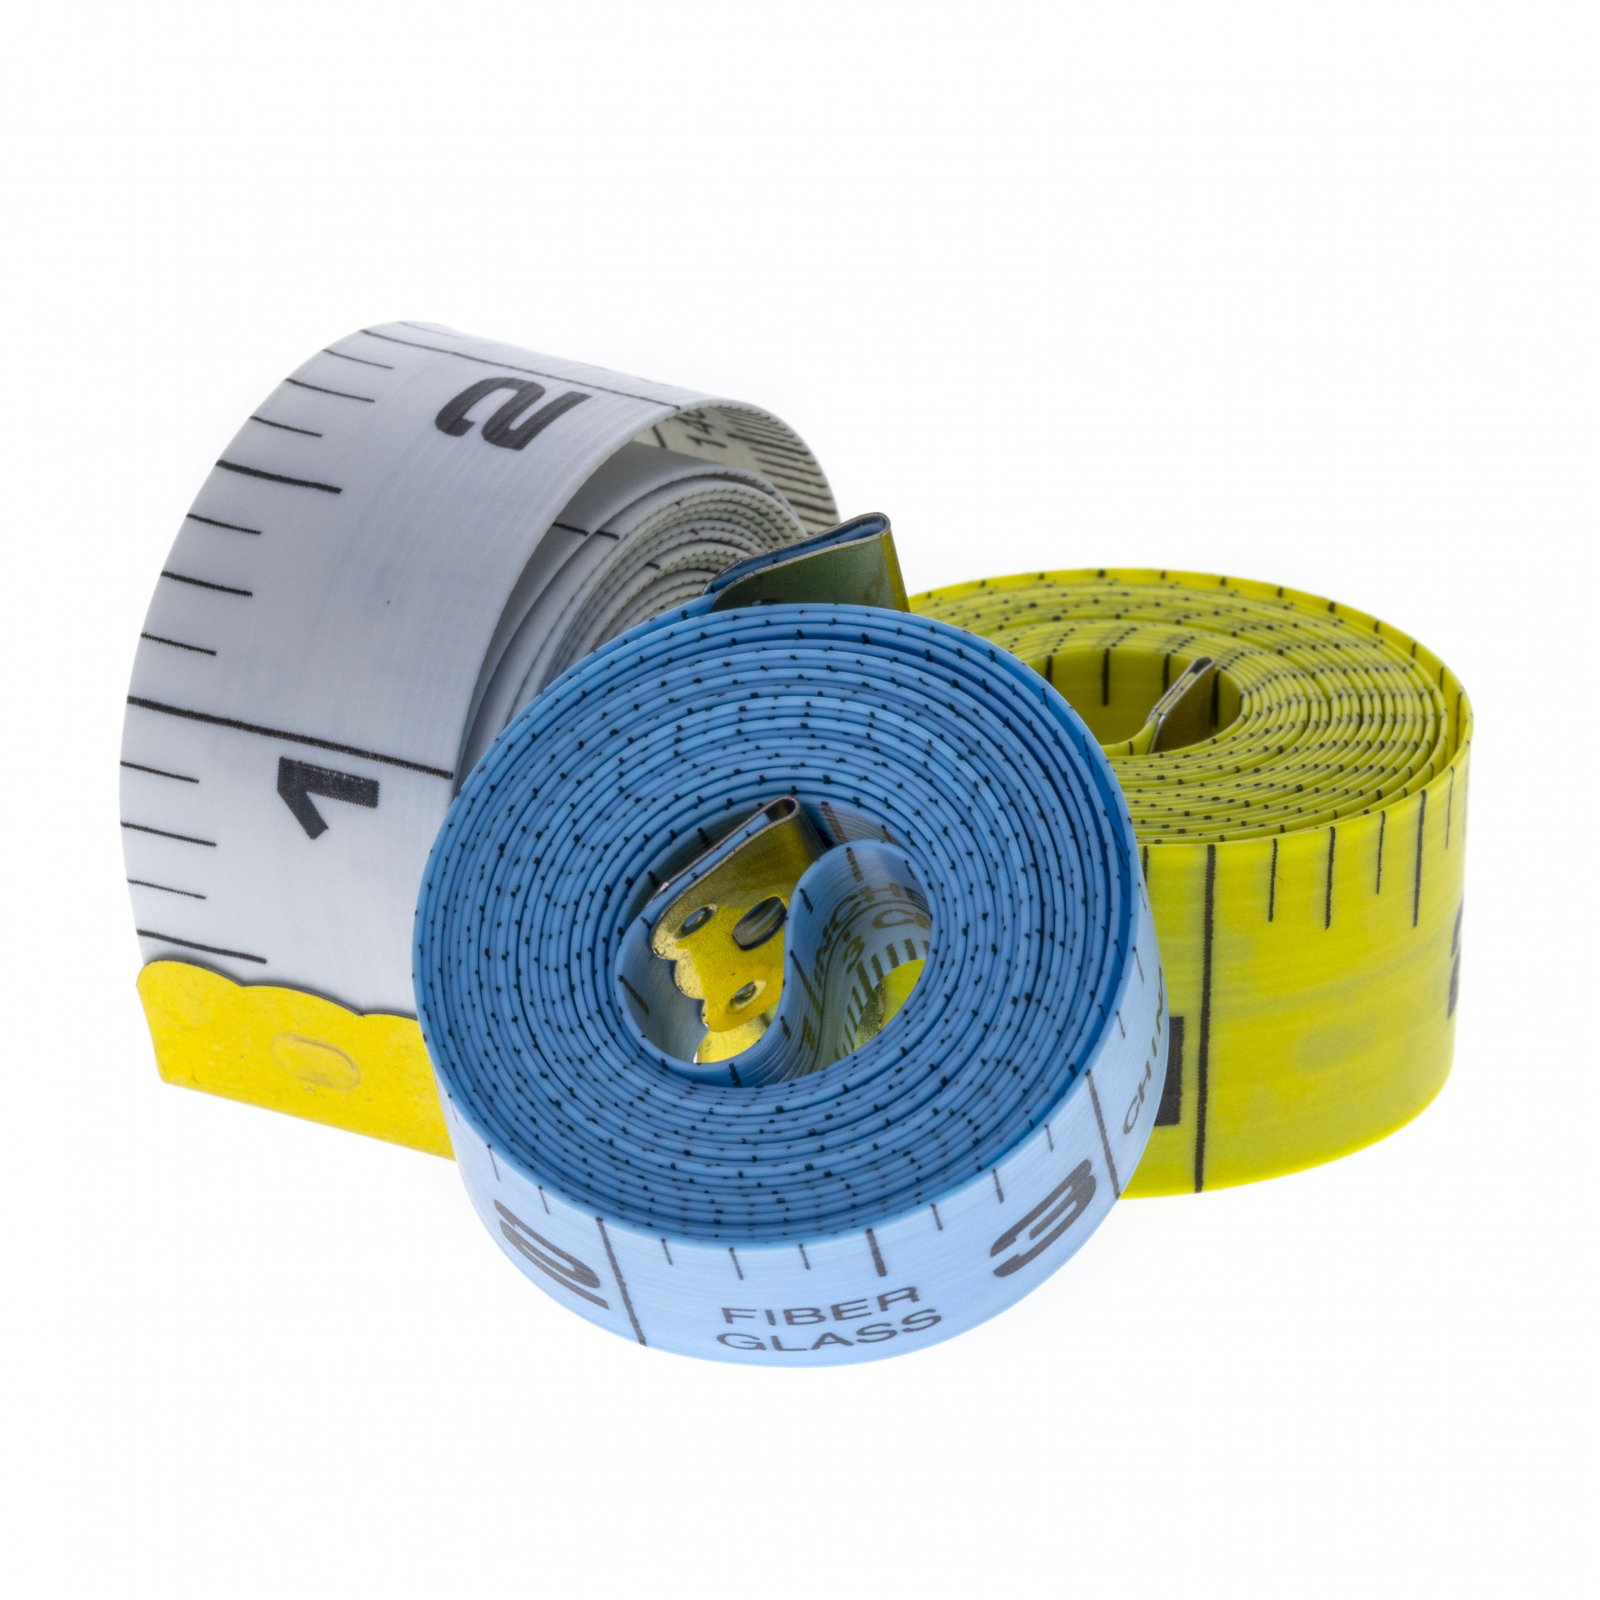 Double Sided Tailors Tape 60 inches